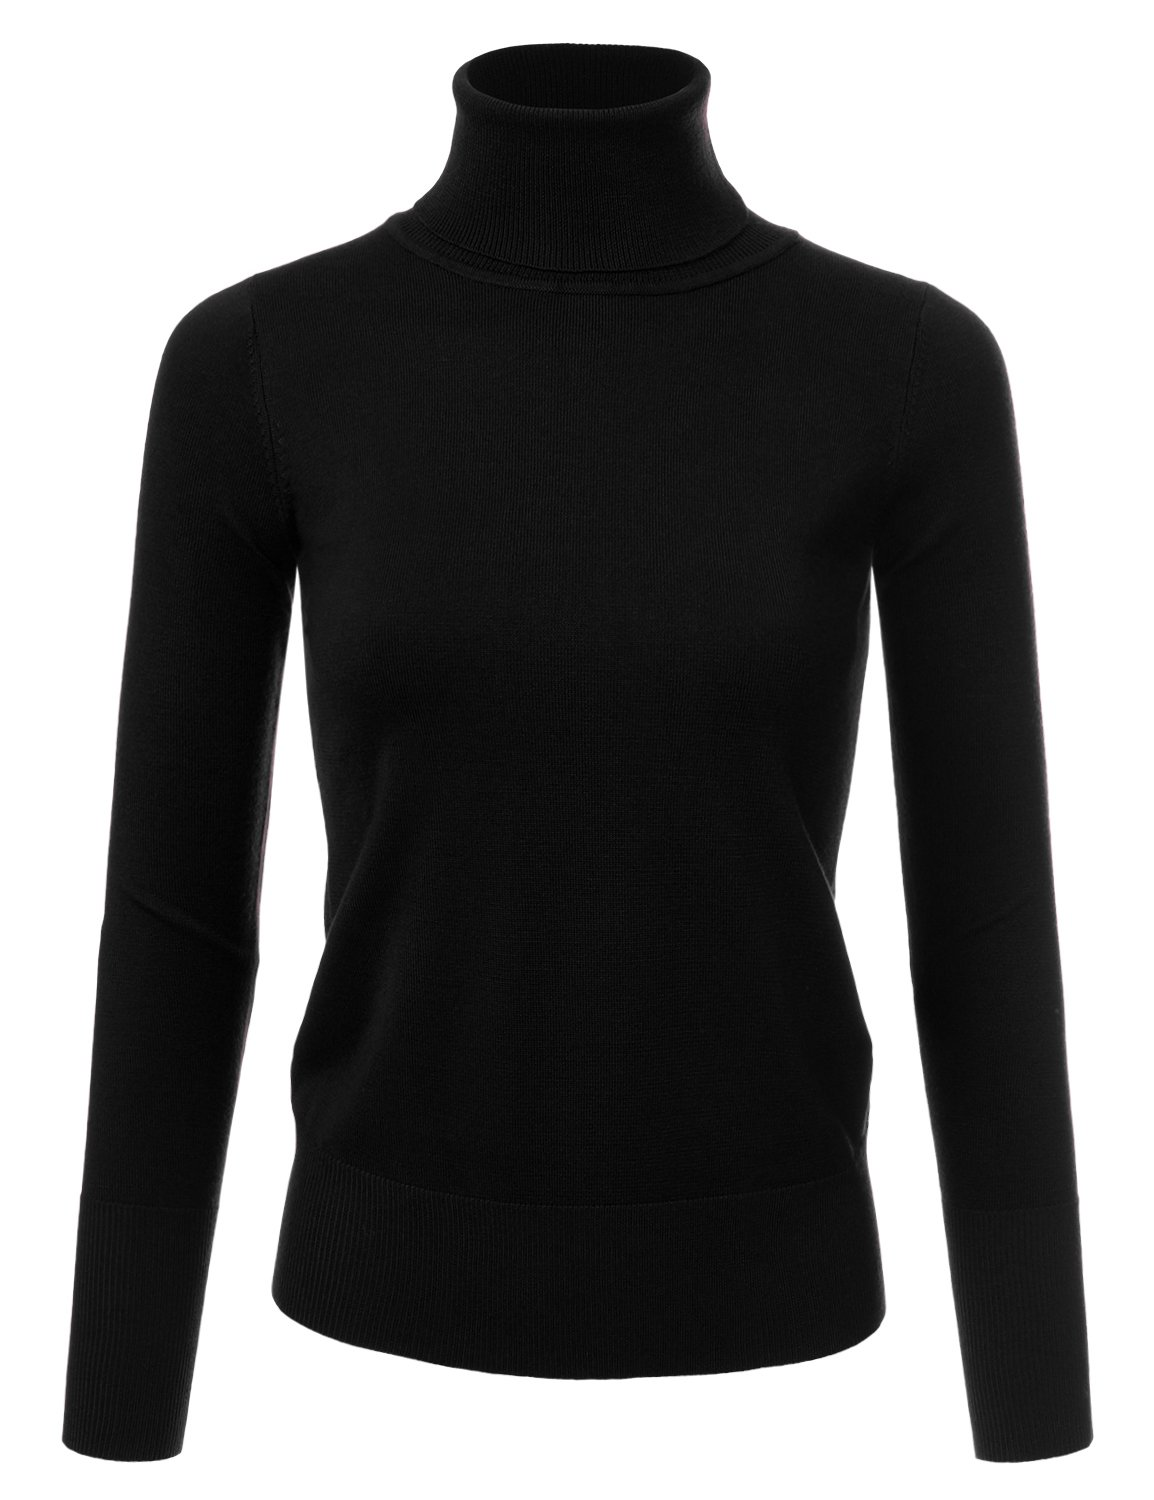 JJ Perfection Women's Stretch Knit Turtle Neck Long Sleeve Pullover Sweater Black L